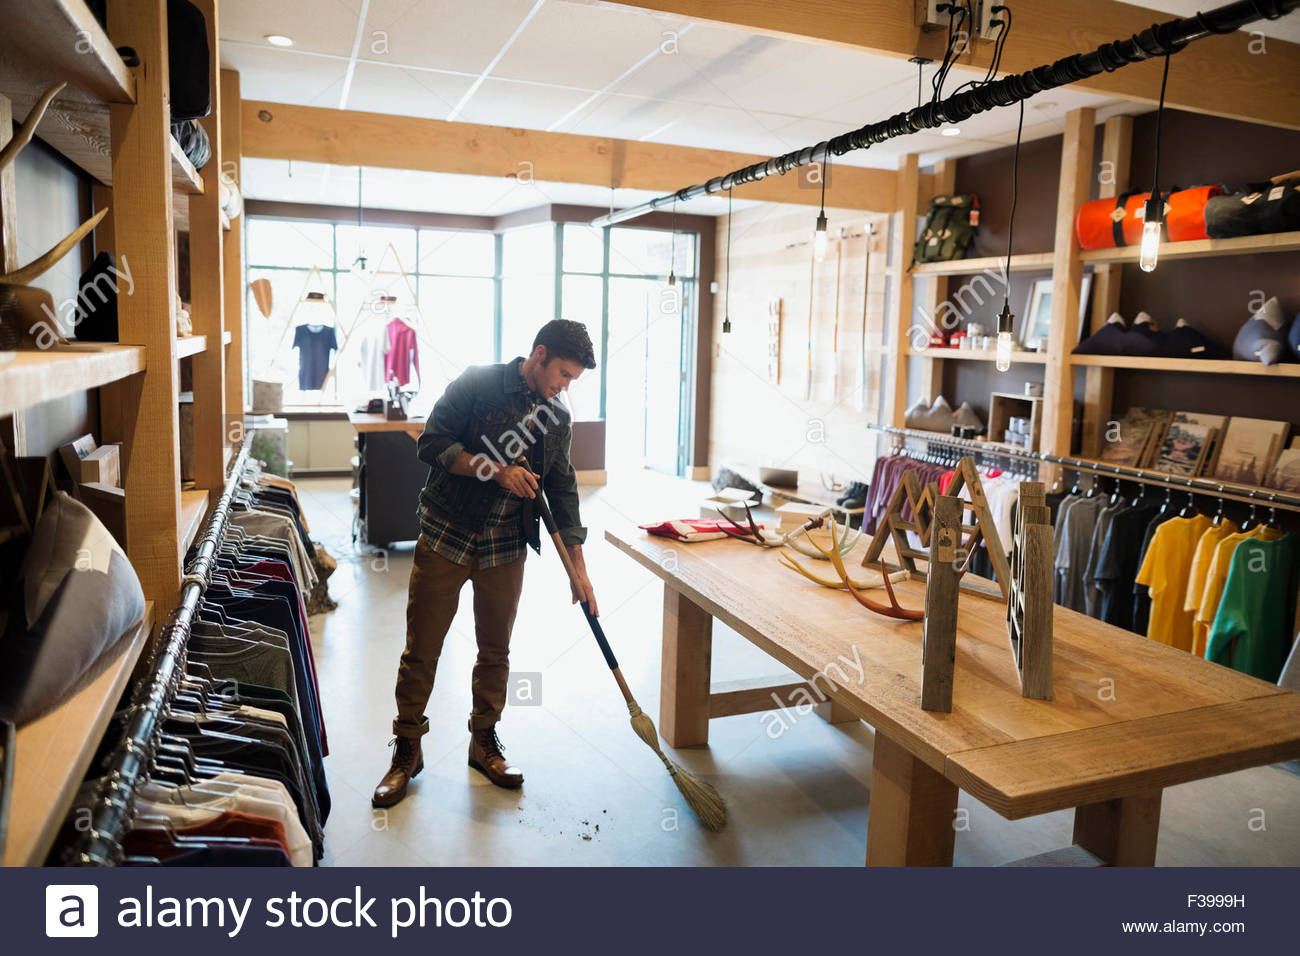 Worker sweeping with broom in shop - Stock Image